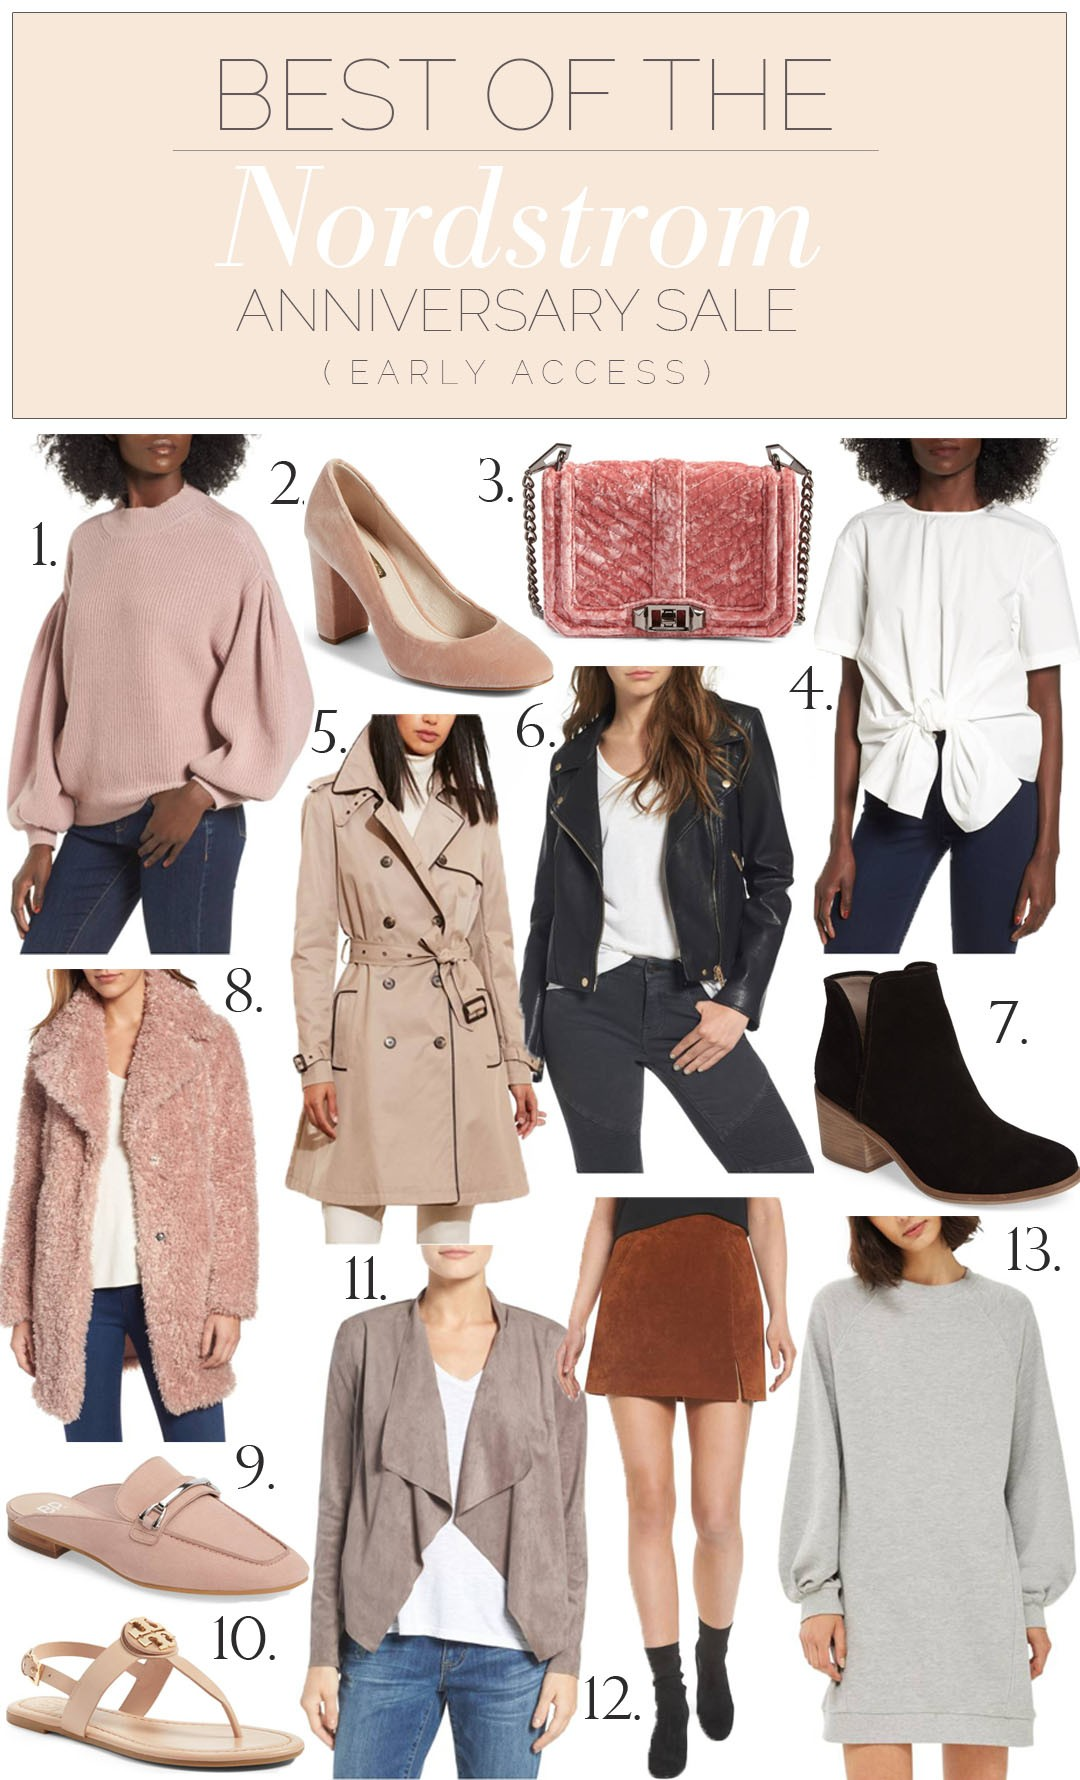 a64a6bef625 Best of the Nordstrom Anniversary Sale